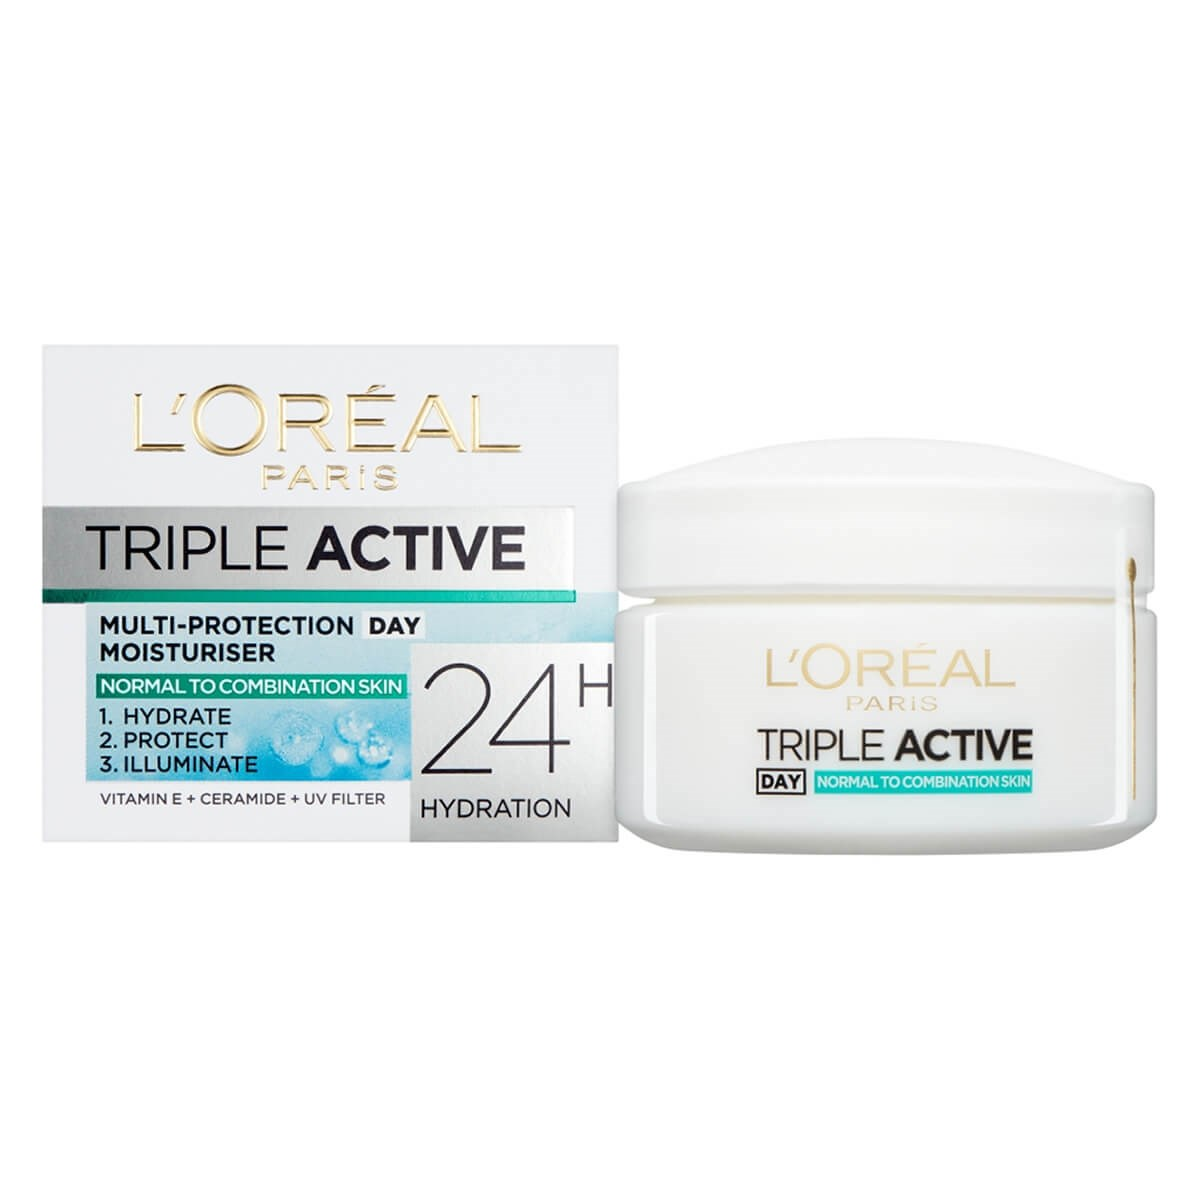 L'Oreal Paris Triple Active Day Moisturiser  - Normal To Combination Skin